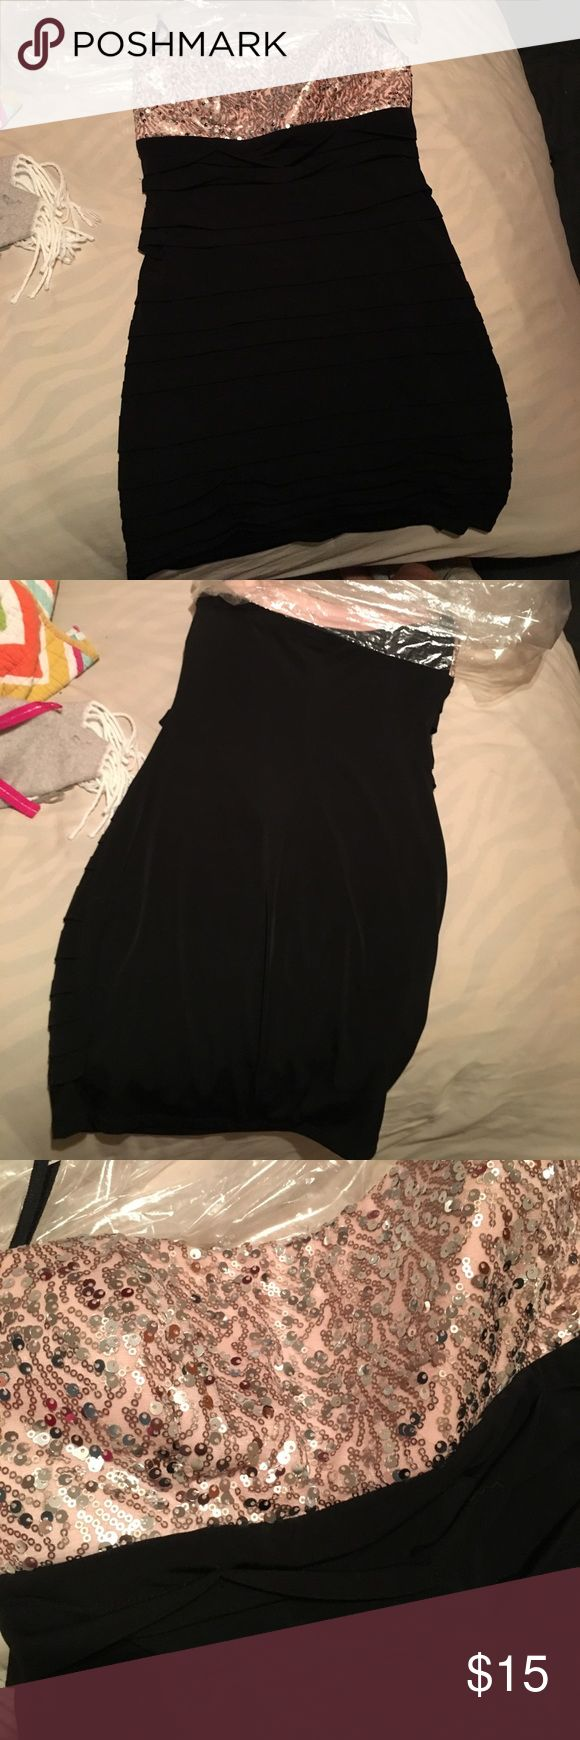 Slip on dress! Formal slip on dress! Worn once to homecoming dance! Black with pink chest and rose gold sequins! Ruby Rox Dresses Strapless